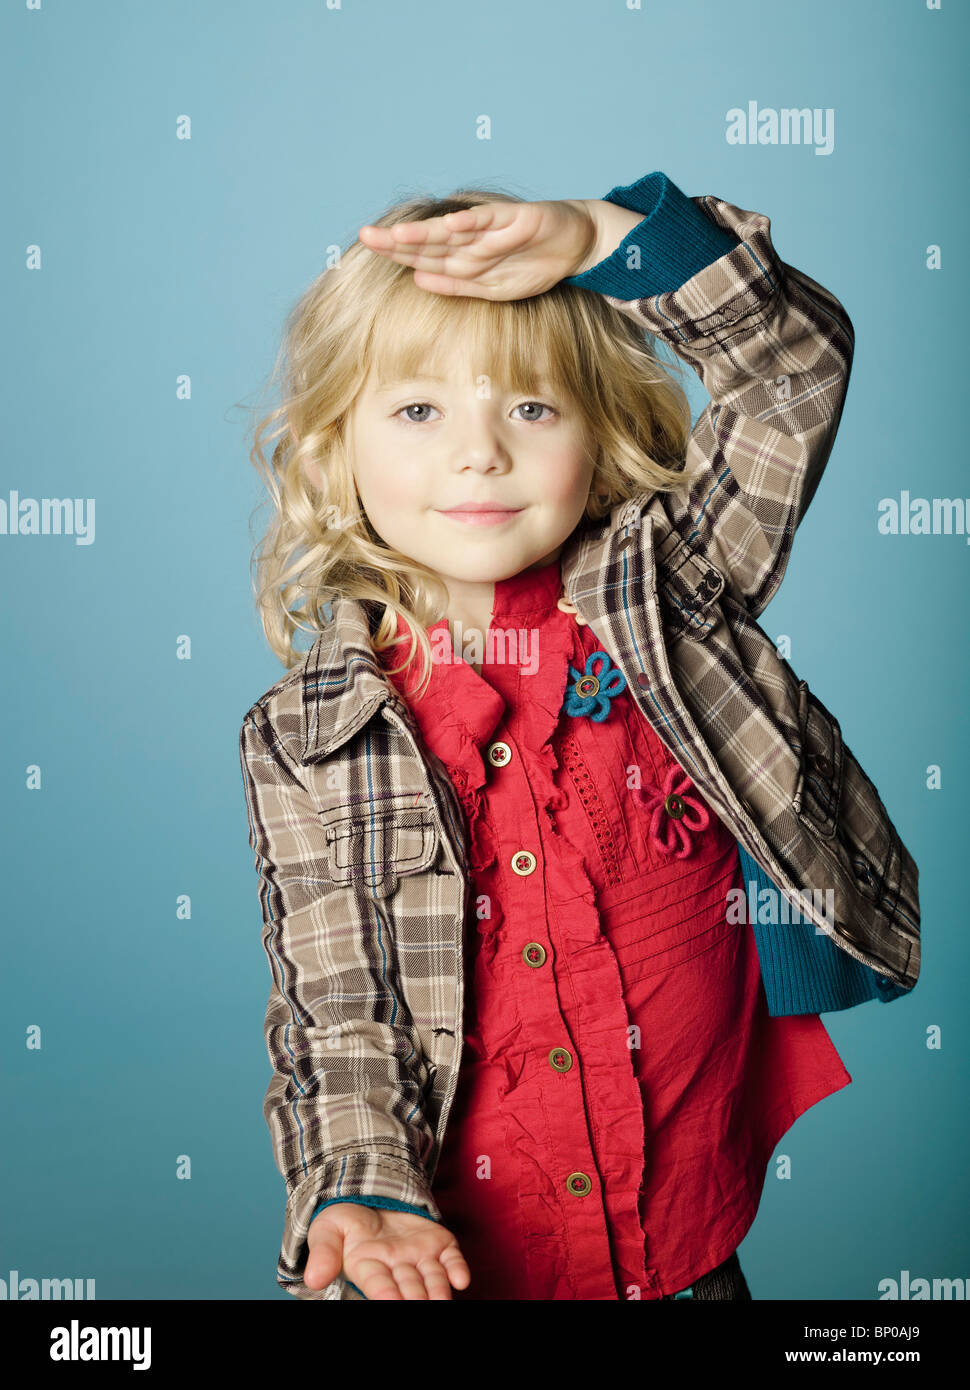 Little girl with hands measuring size - Stock Image